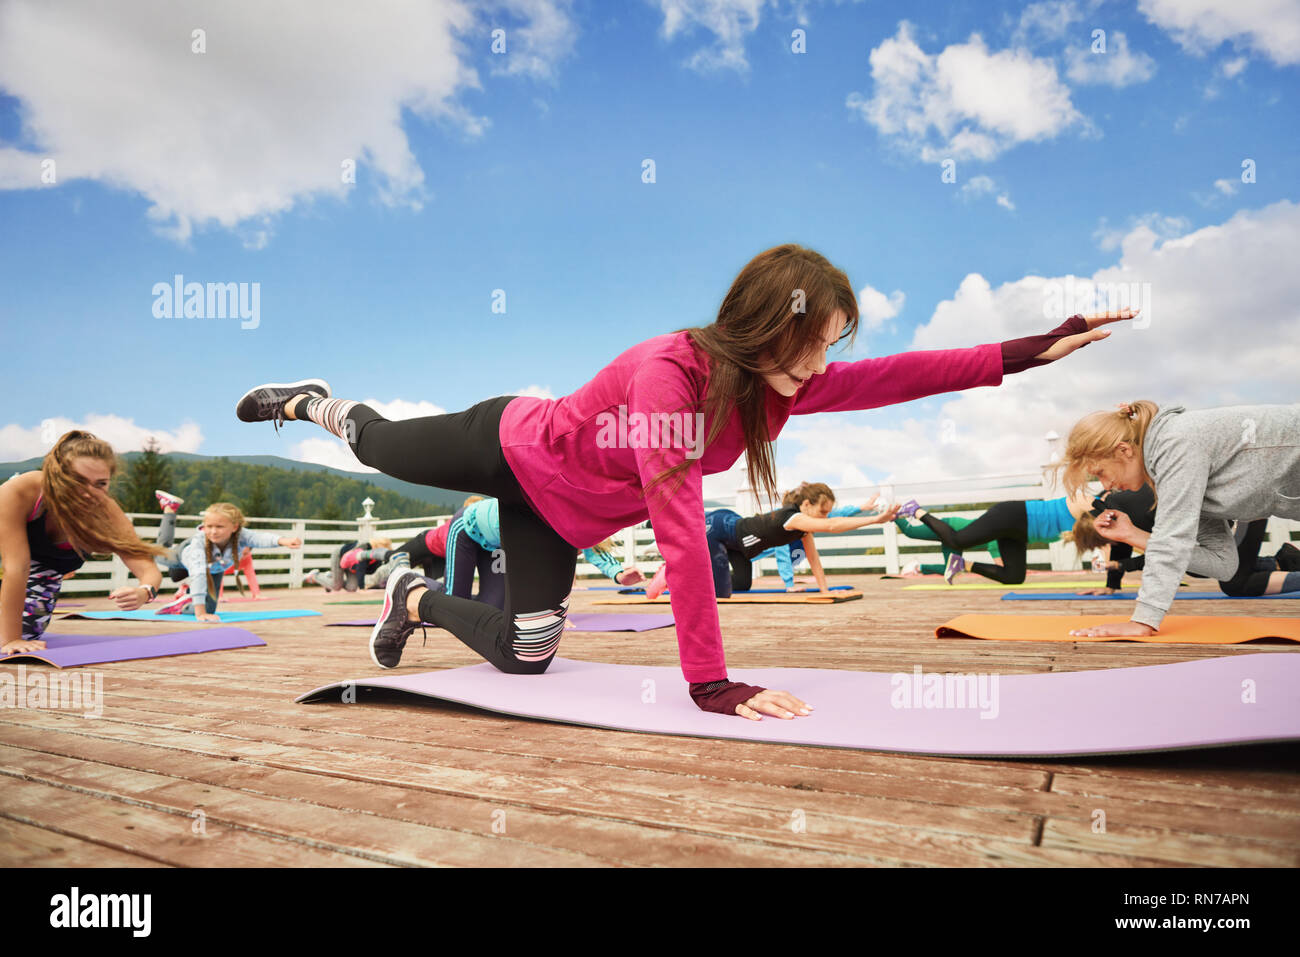 Balance exercises on yoga class. Woman standing in balancing table top pose on yoga mat. Sportive and slender coach training other women yoga, concentration and strenght. - Stock Image